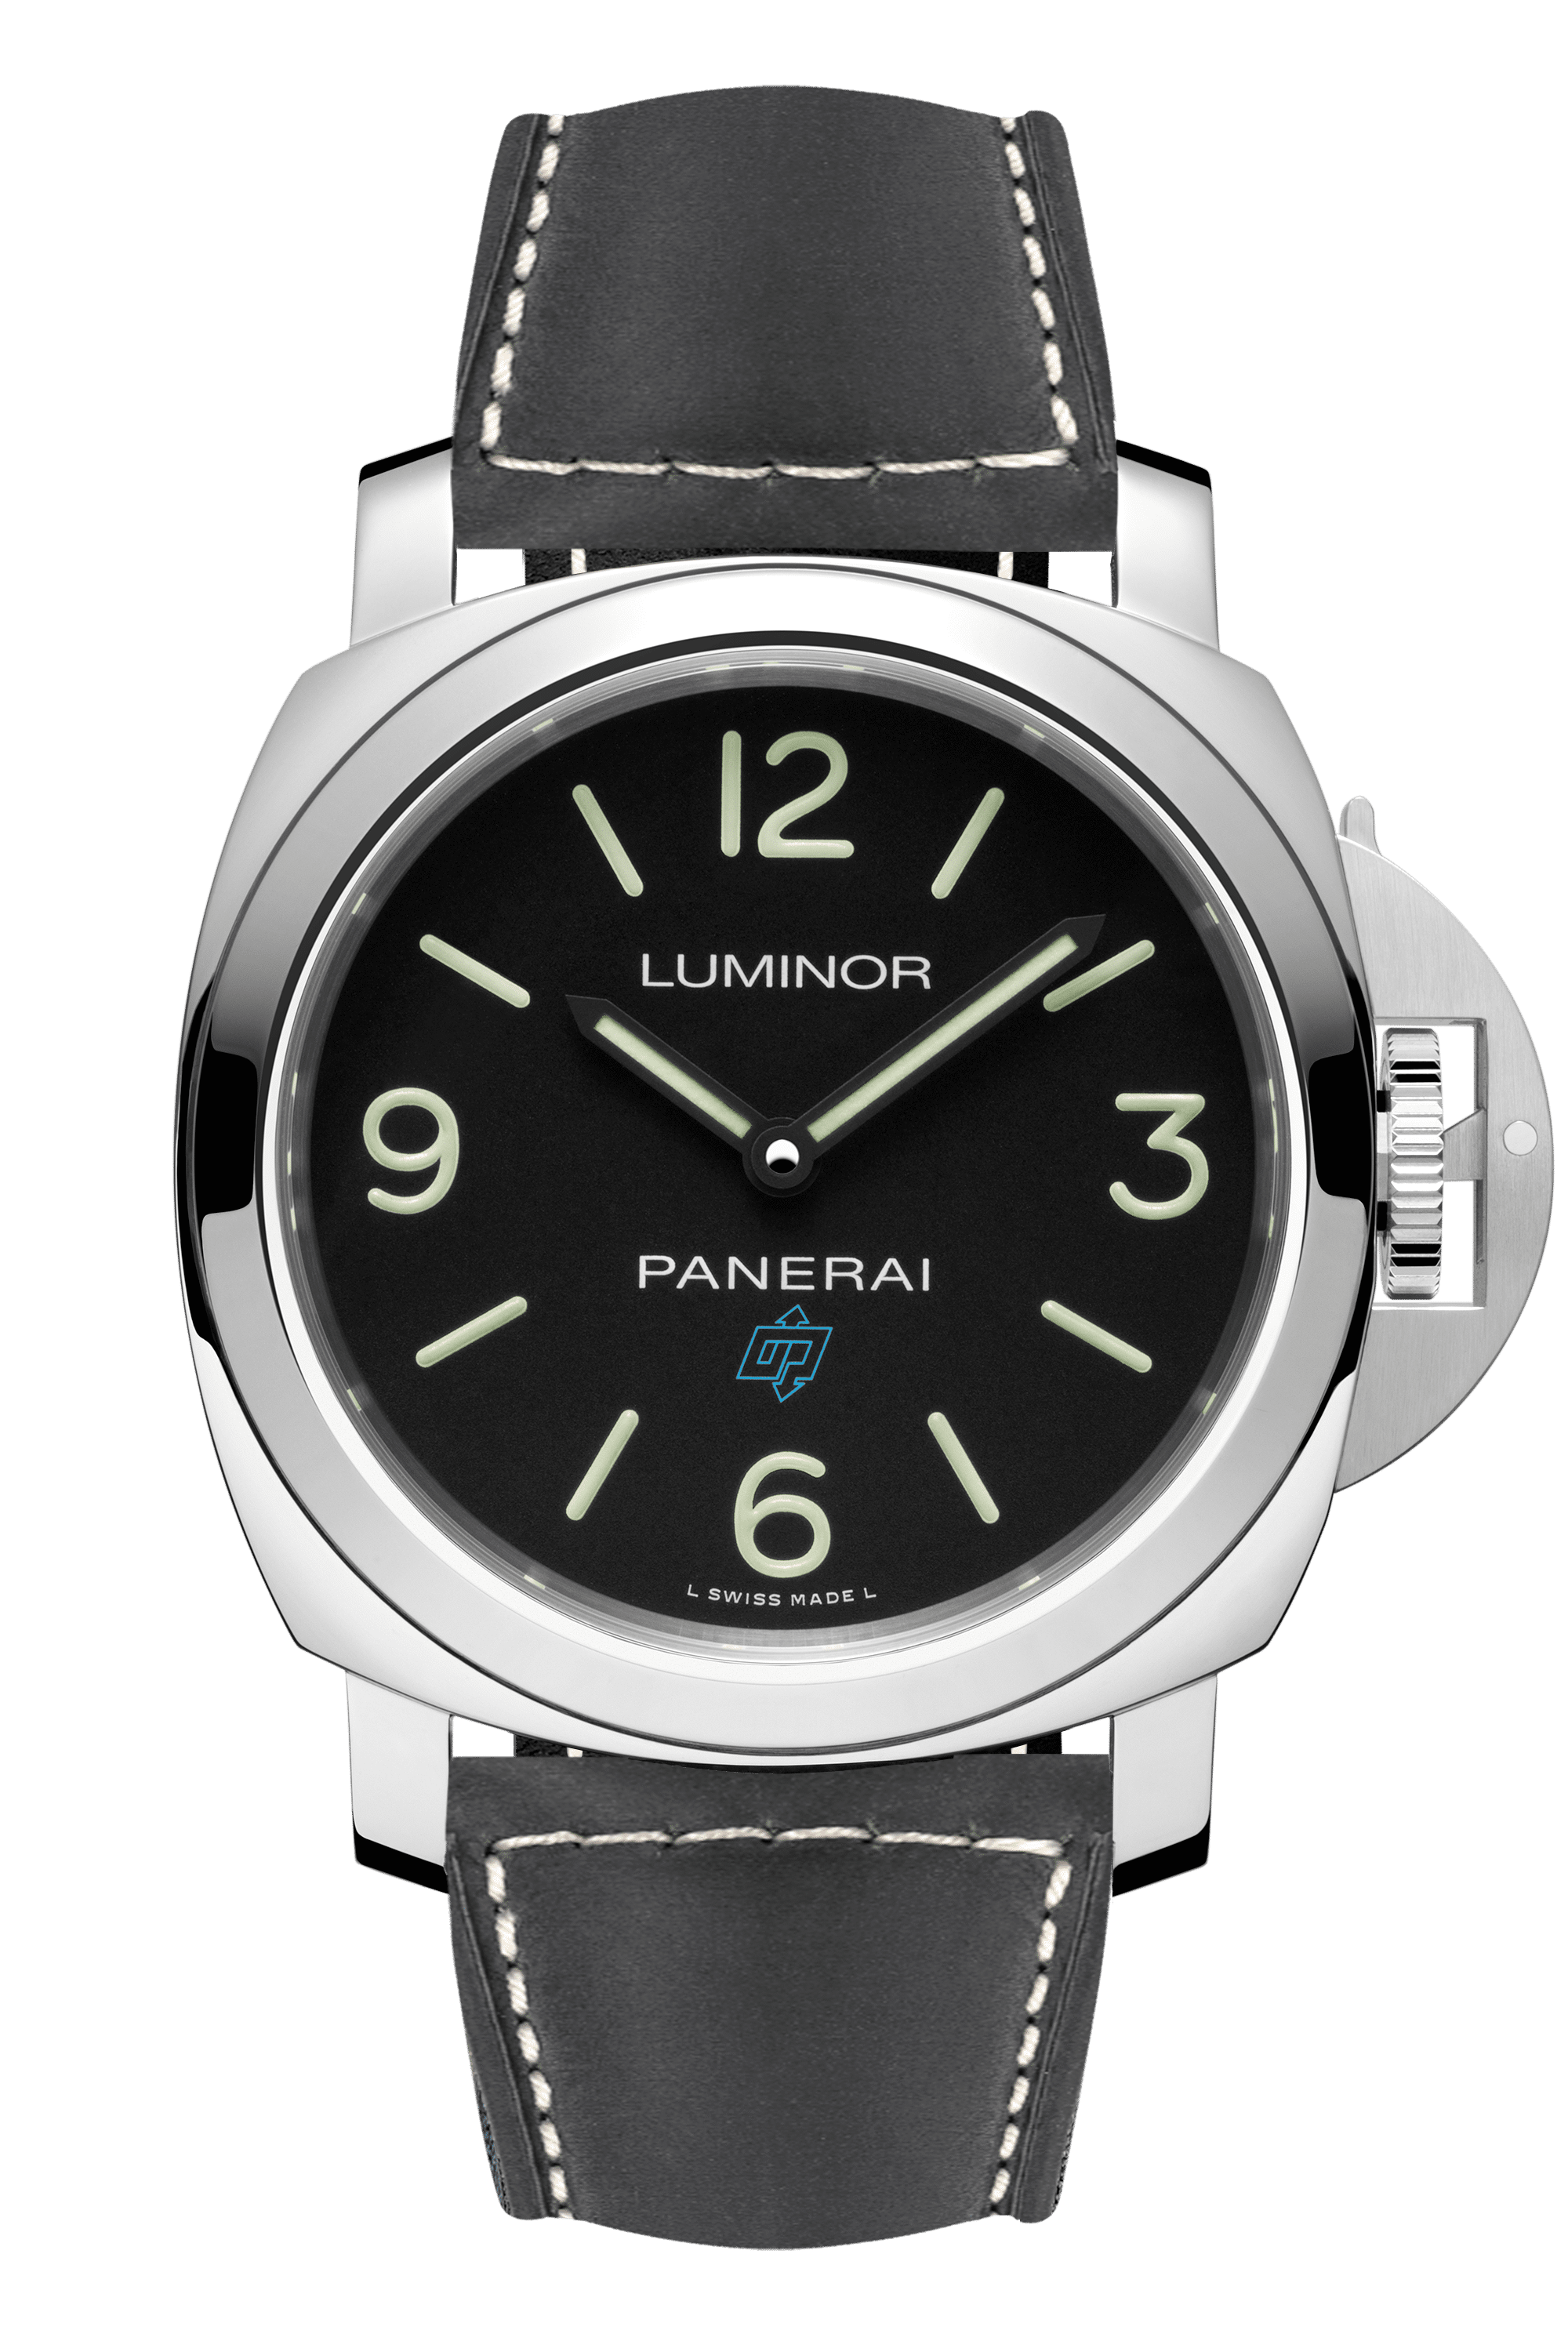 PNPAM00774 - Luminor Base Logo - 44mm腕錶